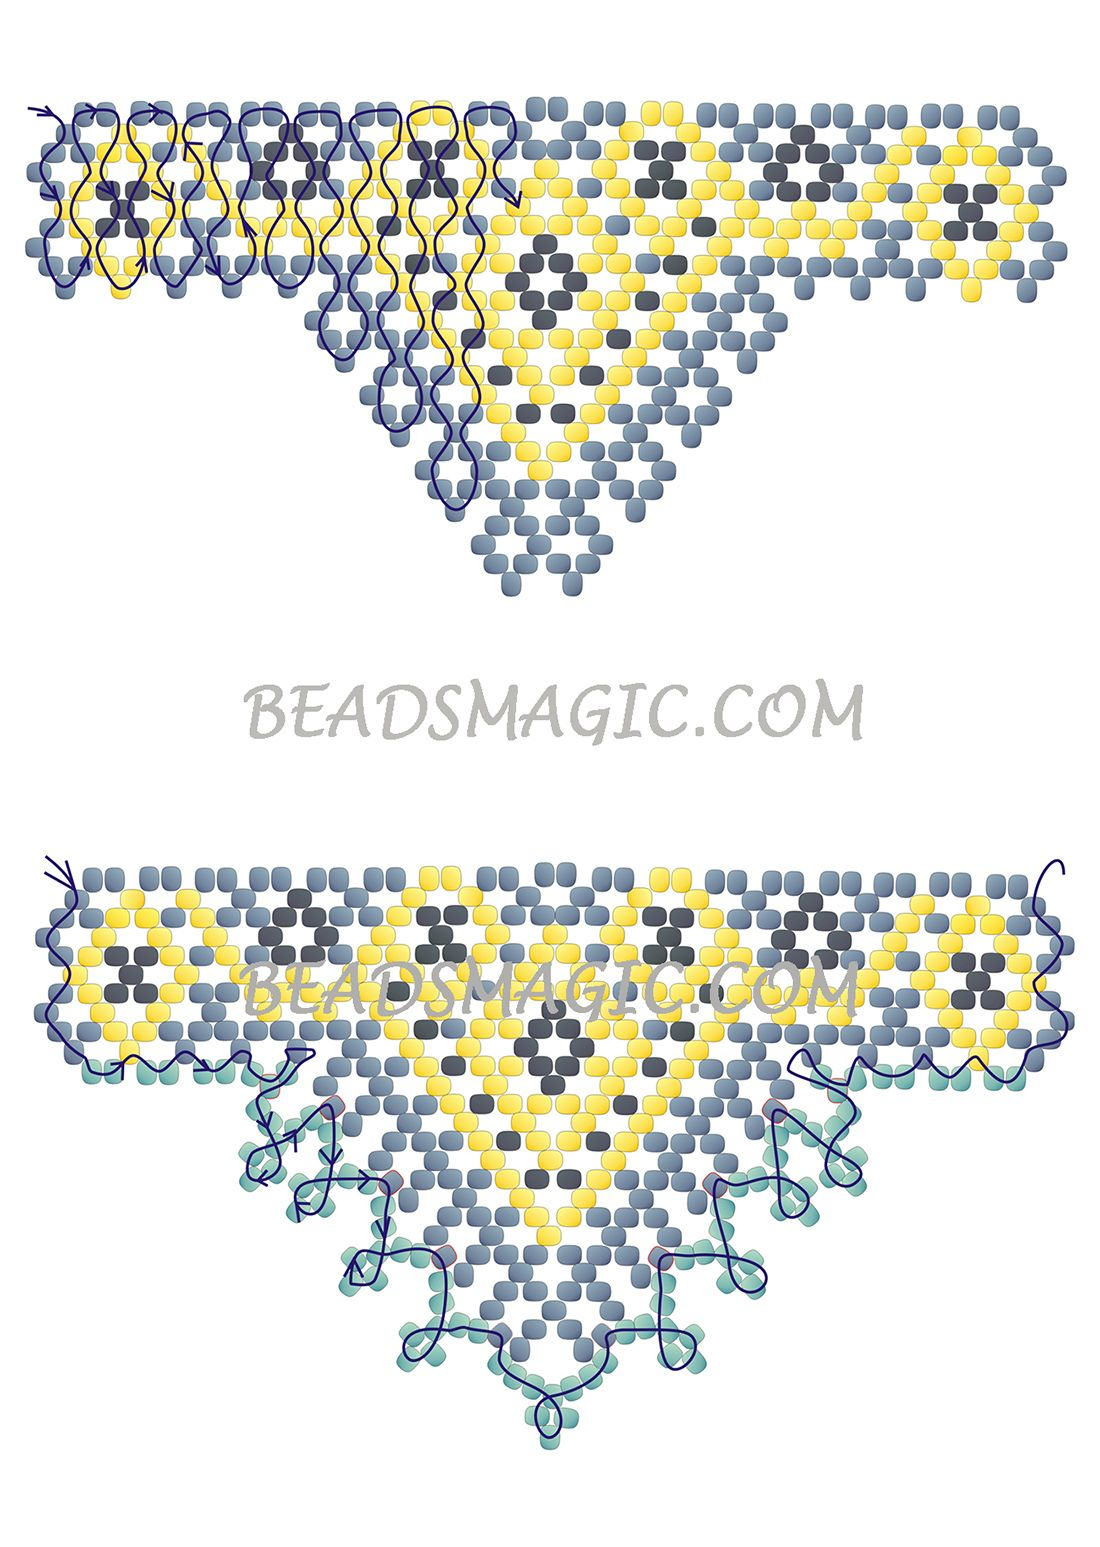 Beads instructions - Free Pattern For Beaded Necklace Sultan Beads Magic